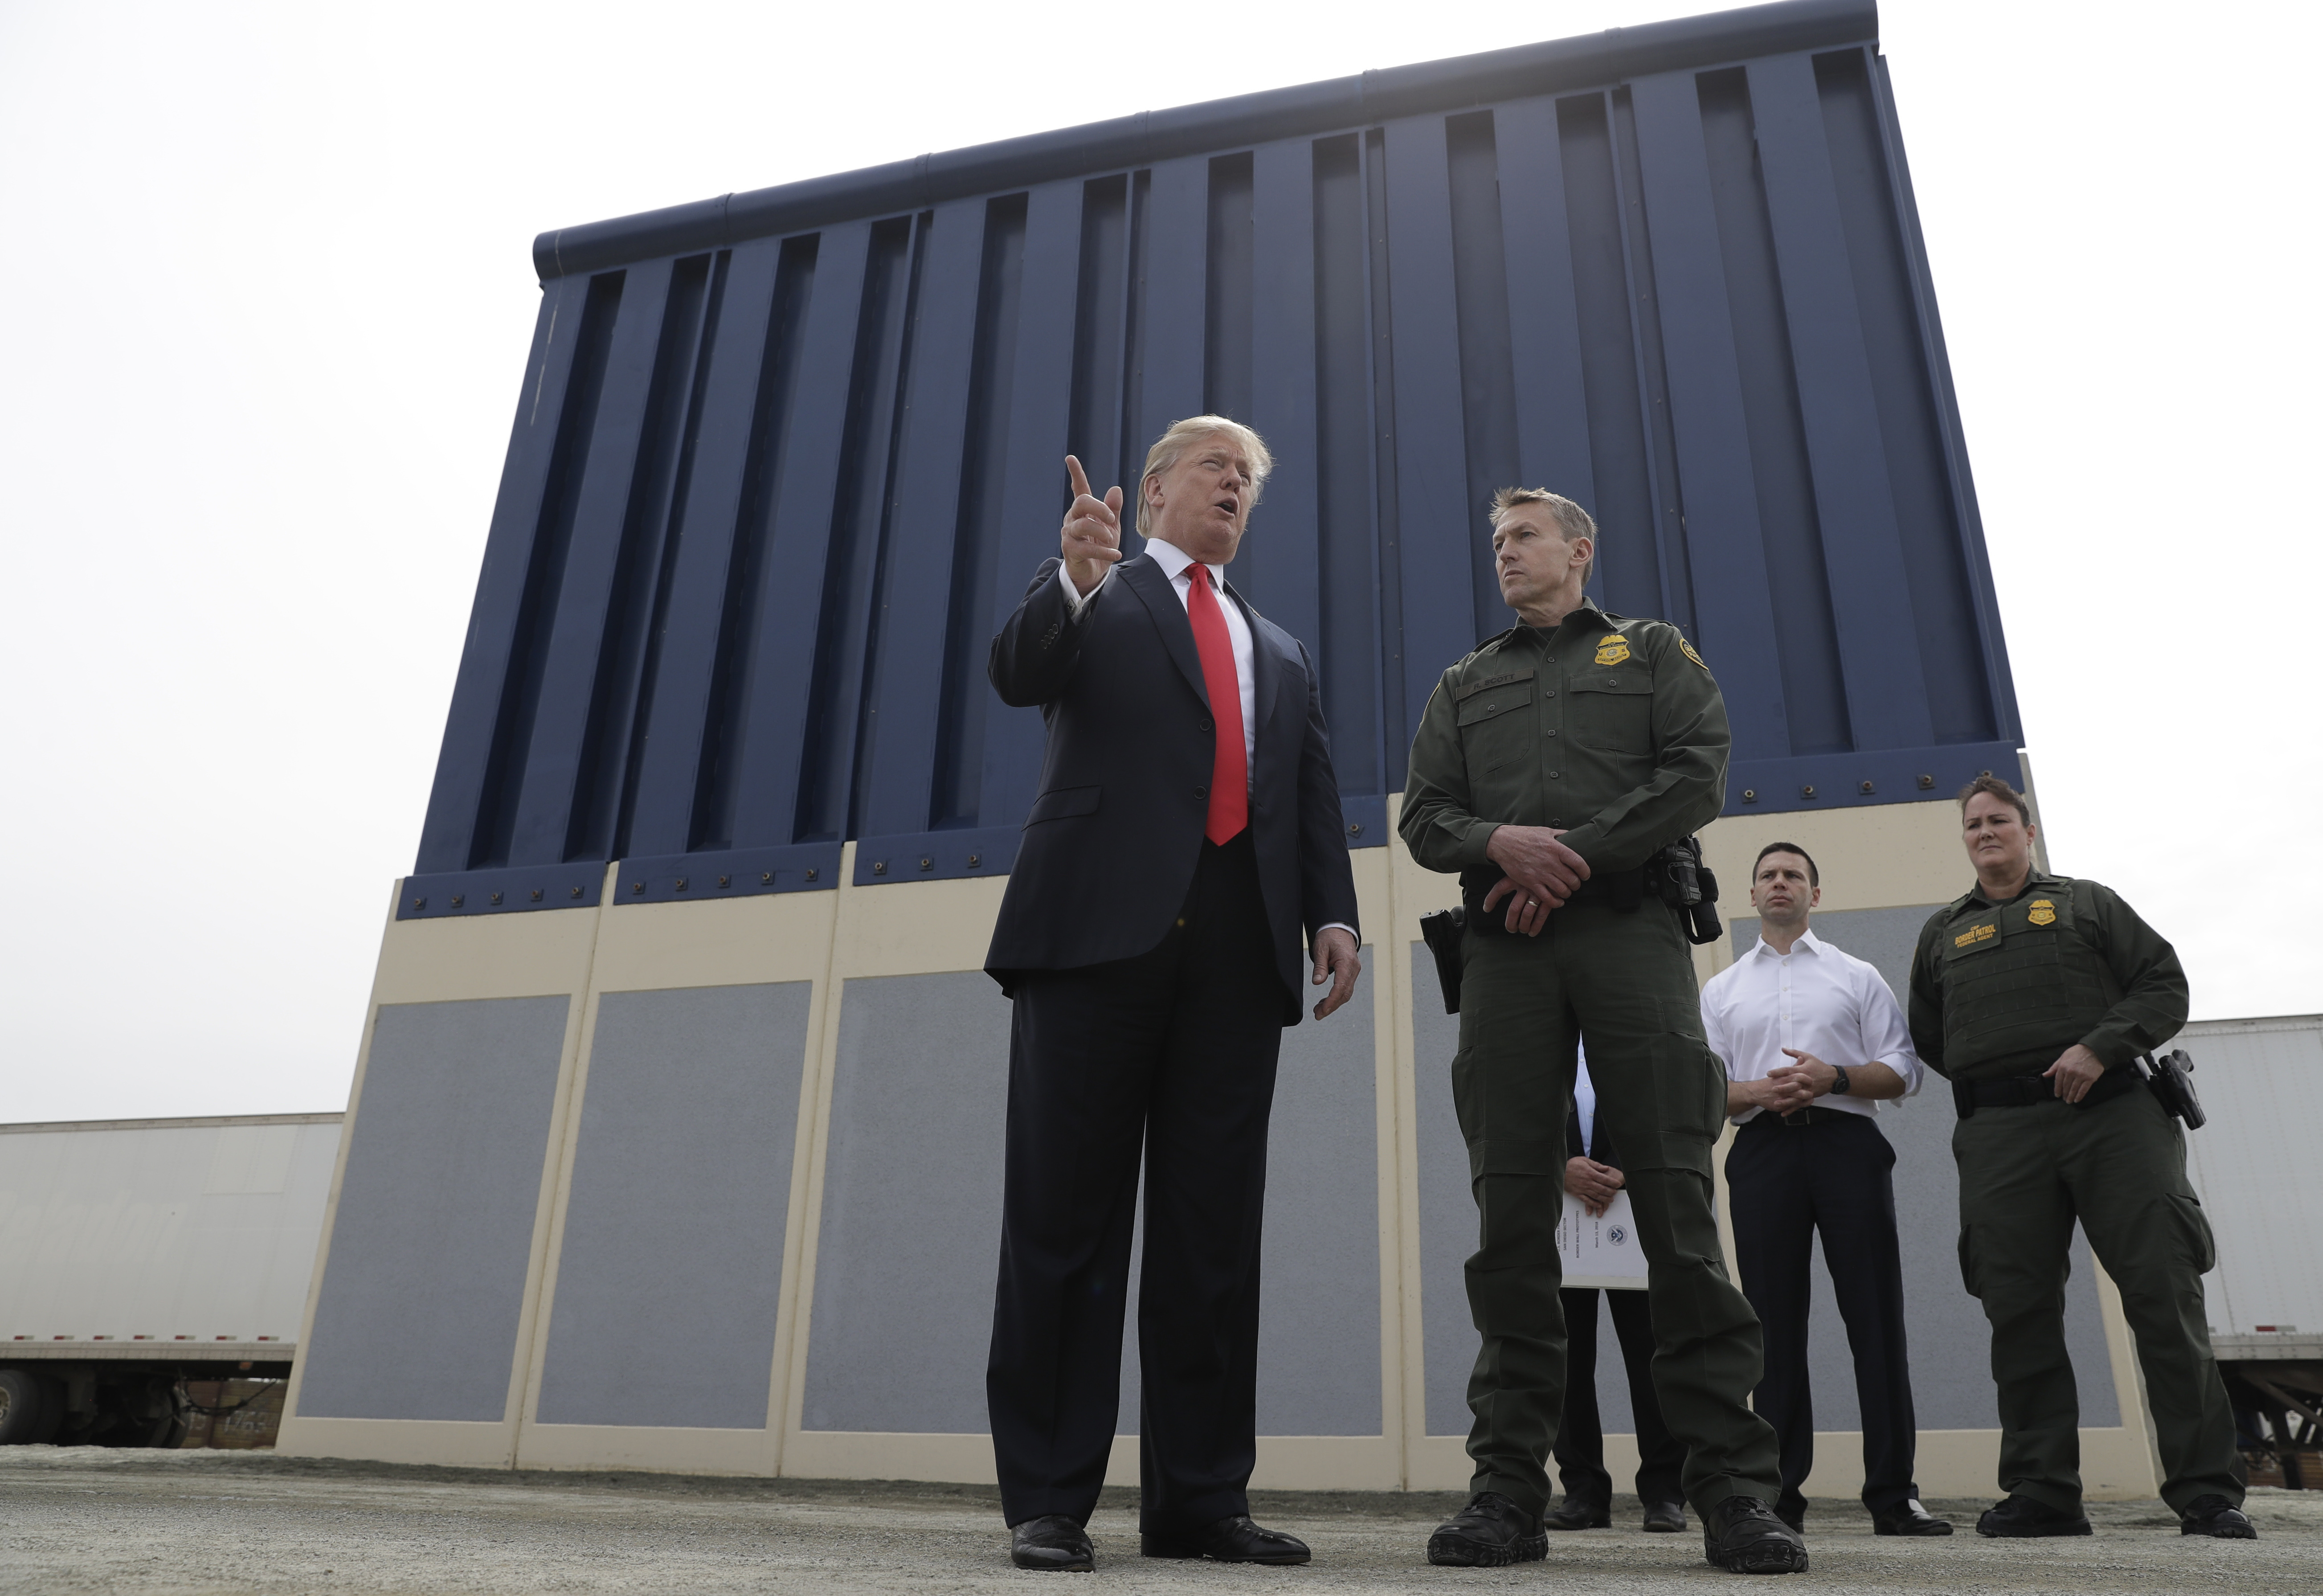 President Trump reviews border wall prototypes on March 13, 2018, in San Diego